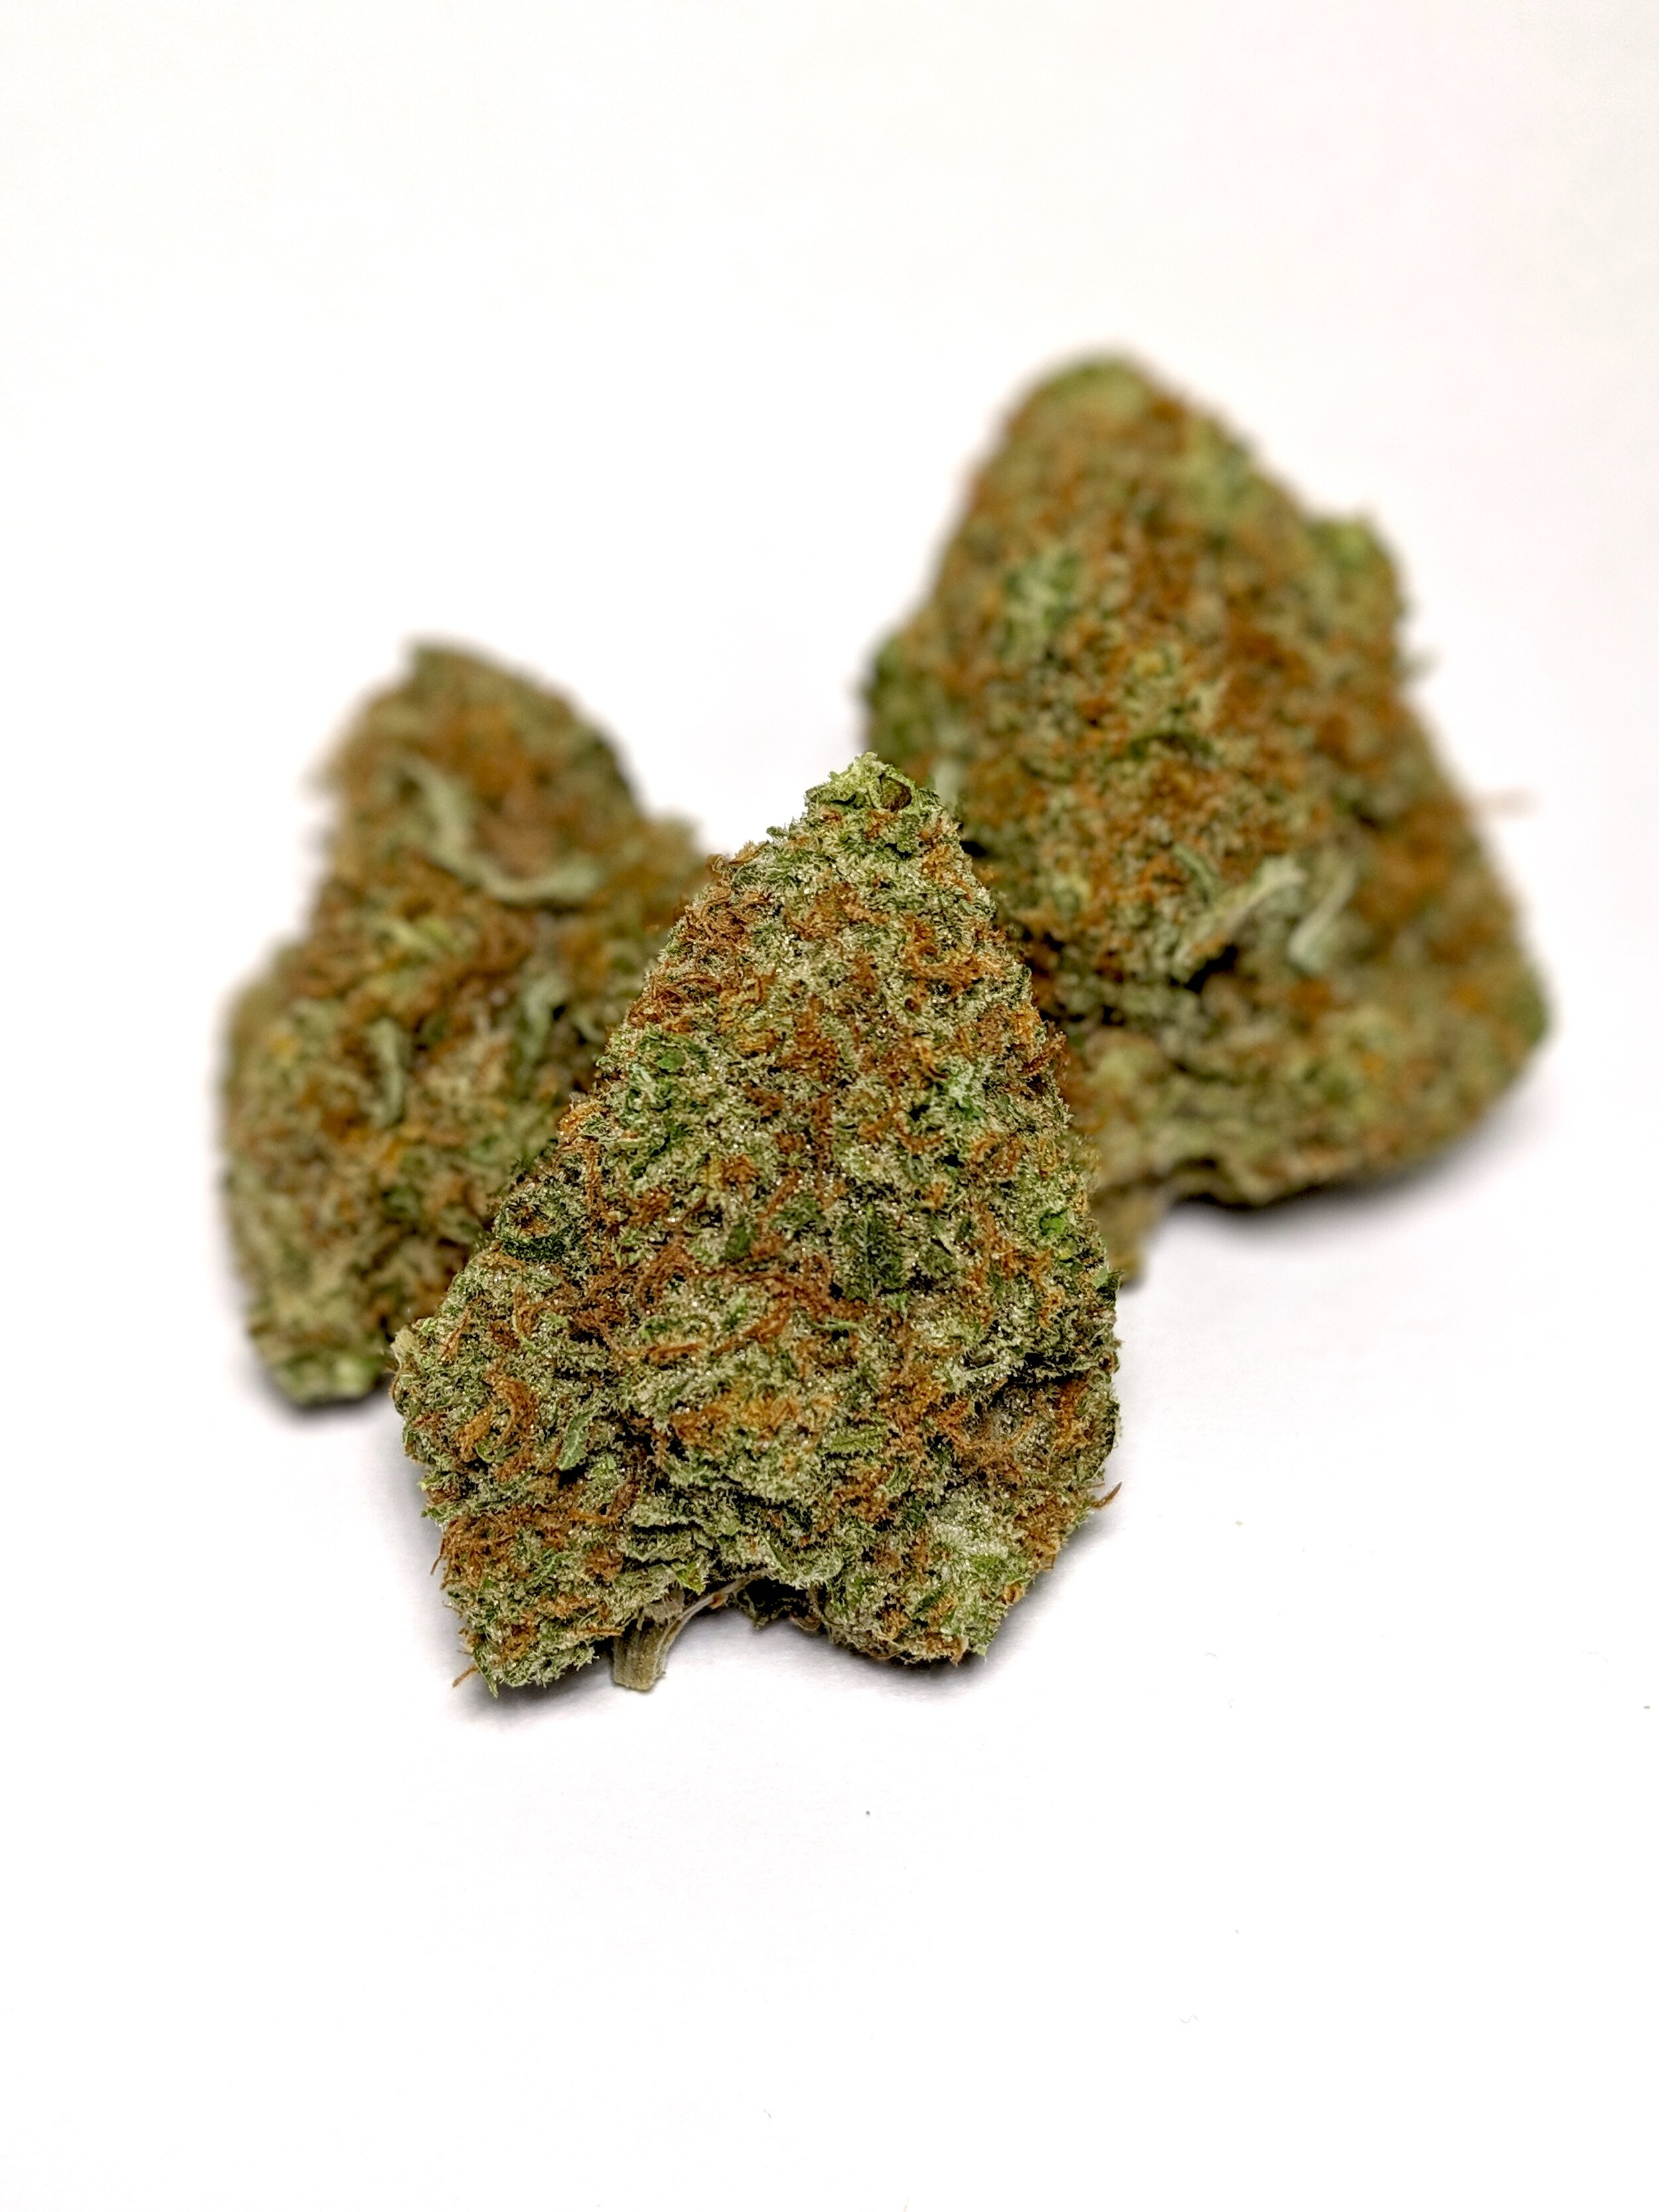 "Platinum OG - Indica    1/4- $65 1/2-$110 OZ-$200   Platinum OG is just as precious as the metal it's named after. With a THC content regularly topping 20%, this indica-dominant hybrid asserts itself as one of the ""heaviest"" strains around. Platinum OG is purported to stem from three strains:  Master Kush ,  OG Kush , and a third unknown parent. Flowers are lime green and plump, with prominent orange hairs and a platinum coating thanks to the abundance of THC crystals. A brief, heady onset settles into a powerful physical sedation suitable for nighttime use and pain, stress, or anxiety relief, making this precious strain a robust healer."